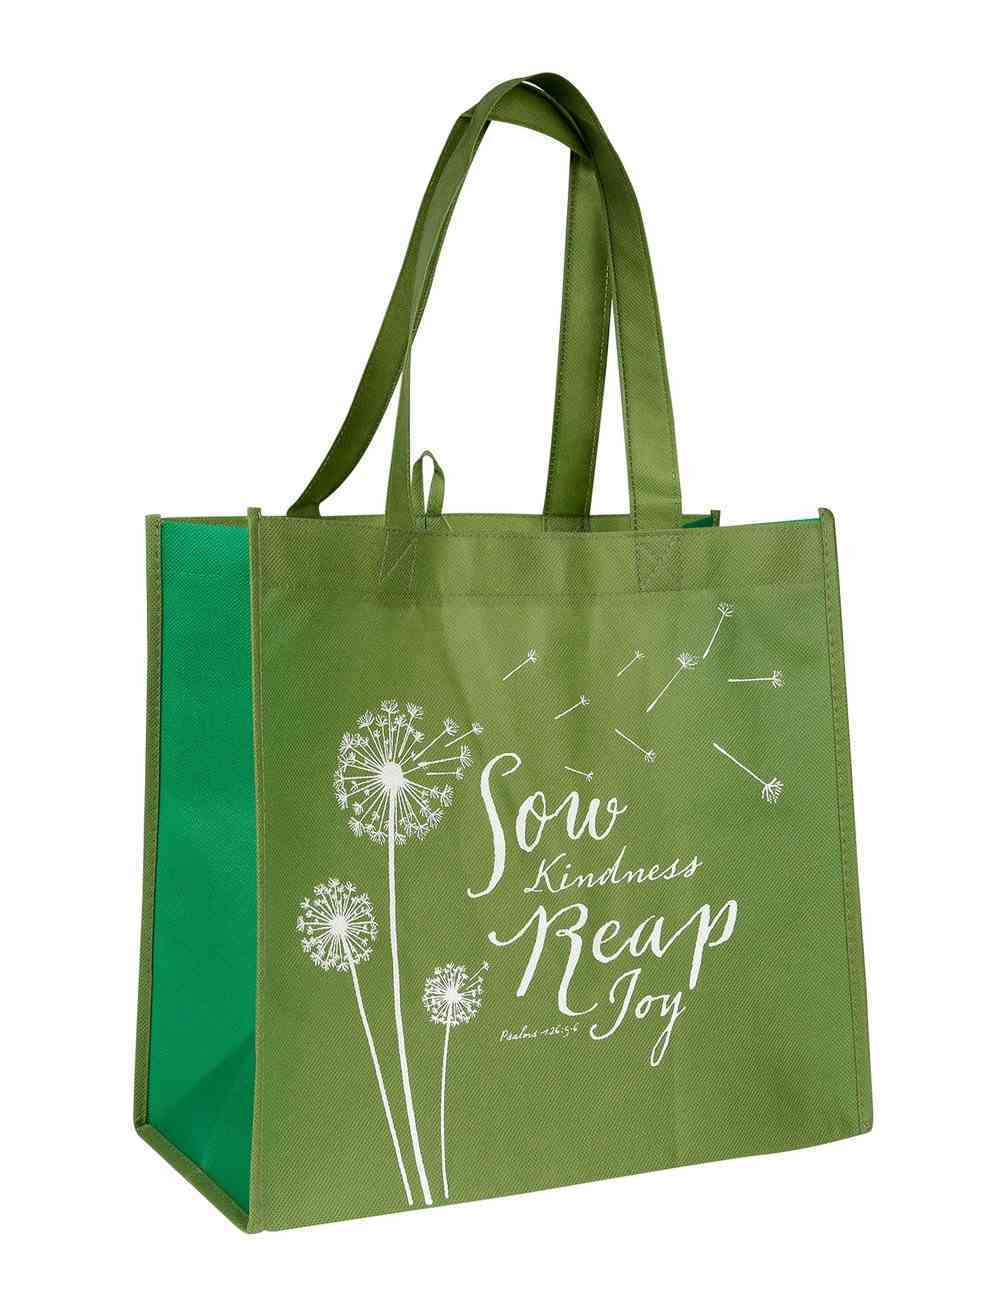 Tote Bag: Sow Kindness, Reaps Joy, Khaki/White Soft Goods